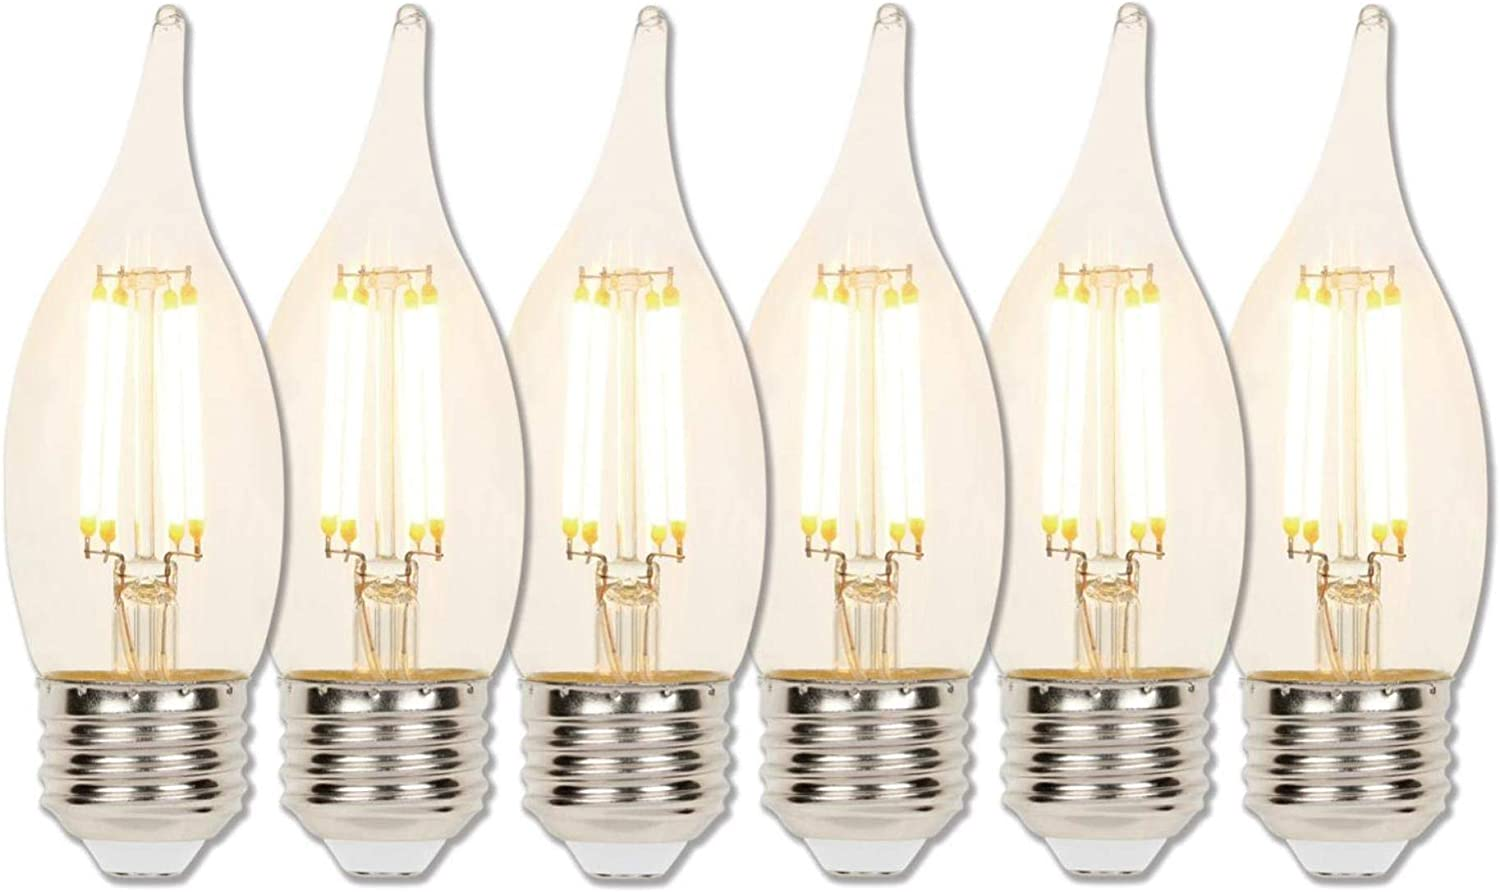 Westinghouse Lighting 5114000 40-Watt Equivalent Ca11 Dimmable Clear Filament Led Light Bulb with Medium Base 2 Pack,